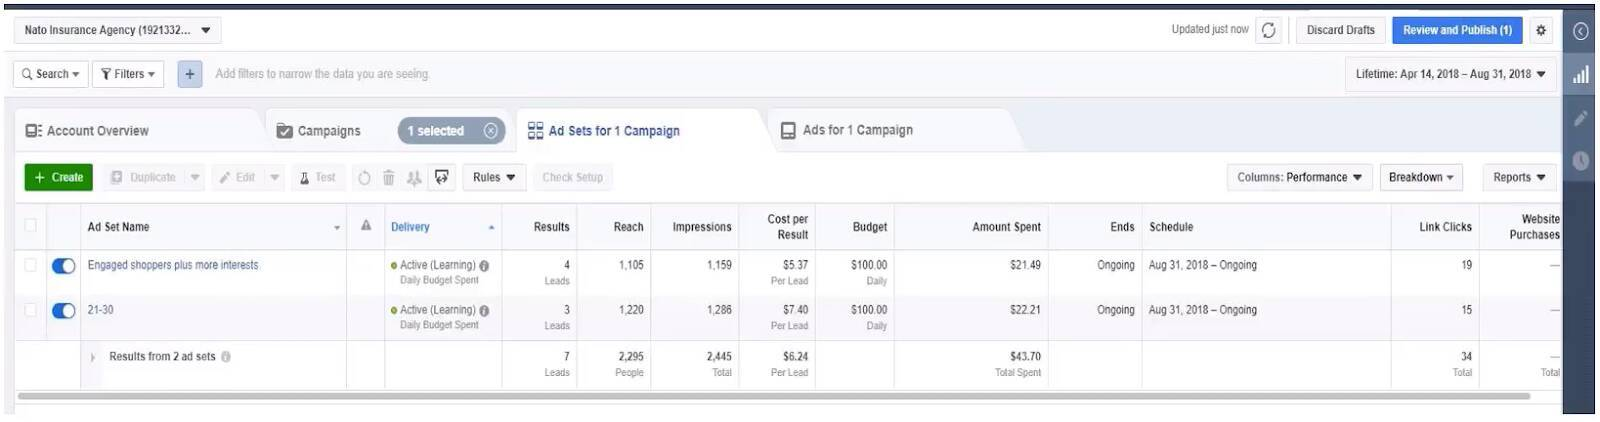 Fully Covered System insurance lead generation results